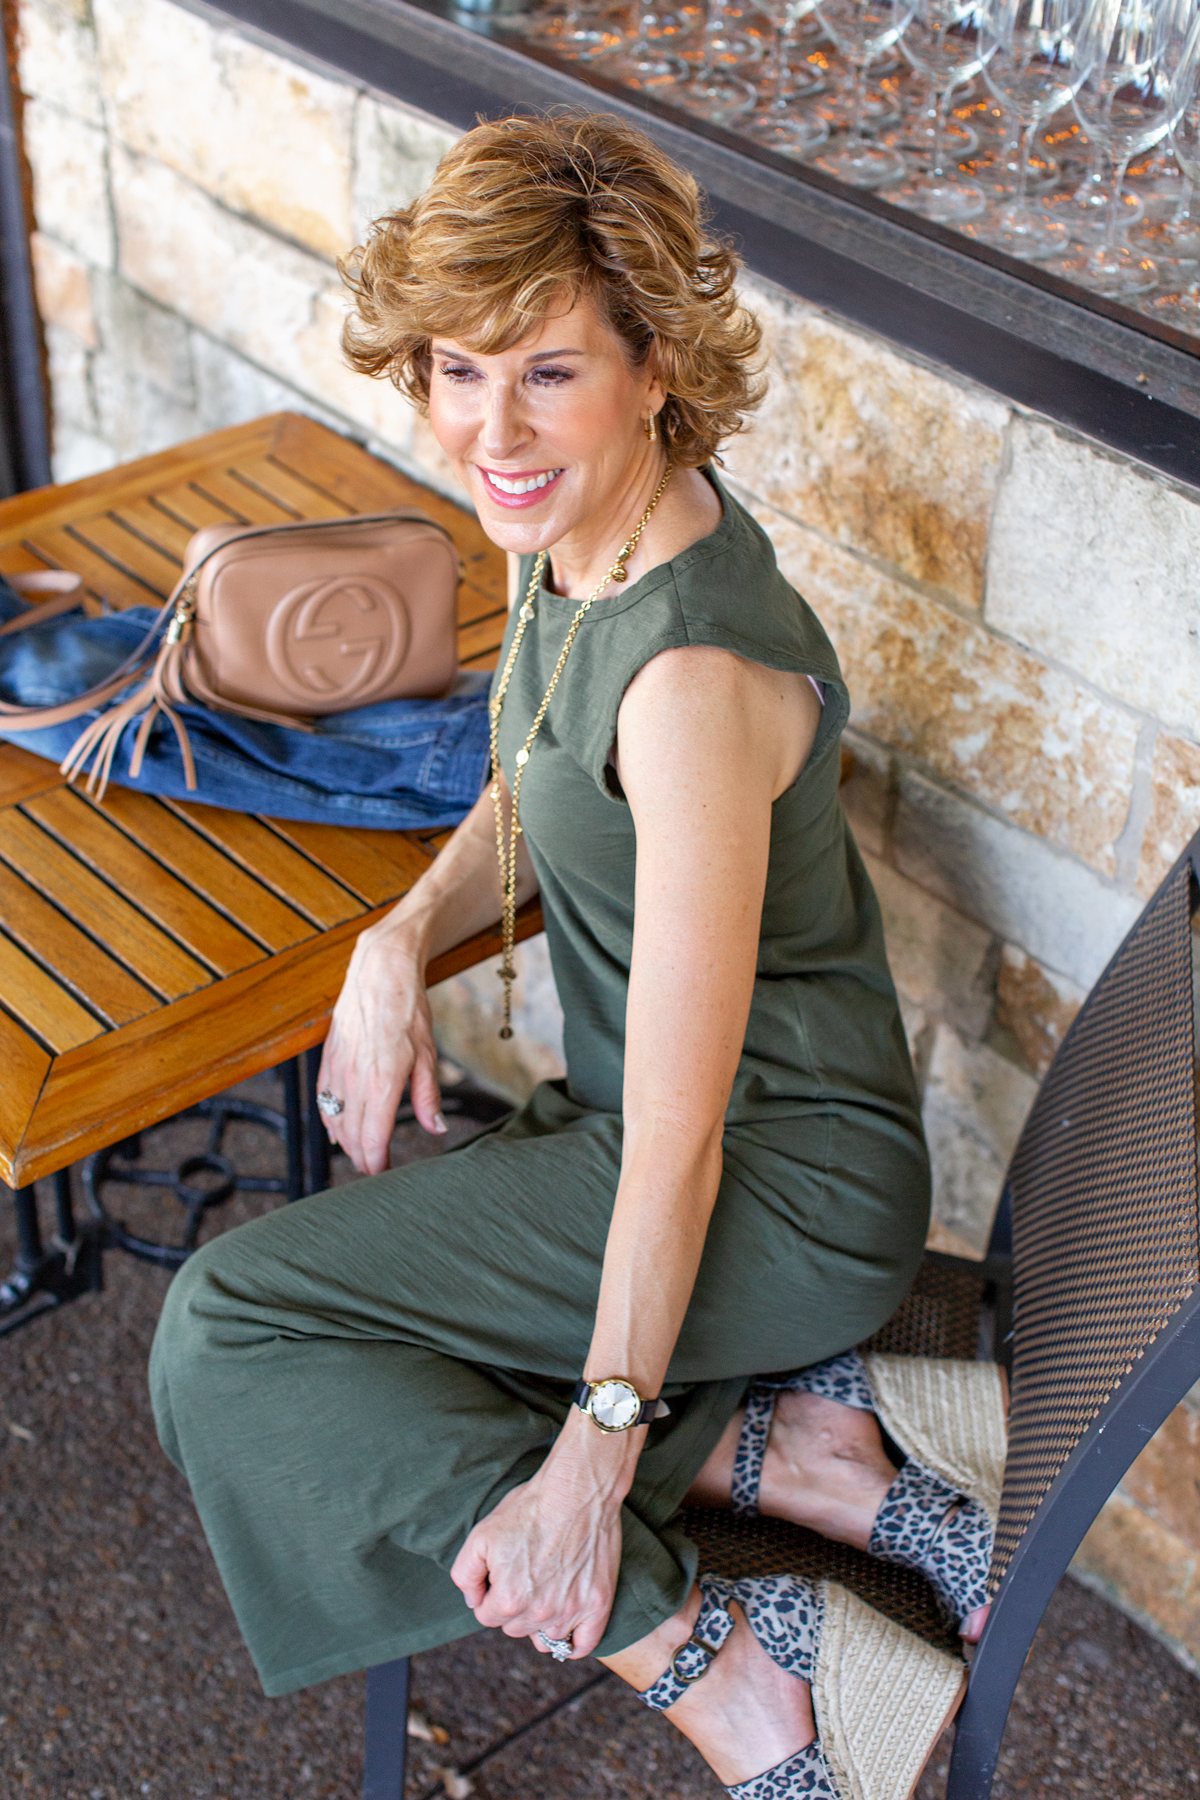 woman in green dress sitting at a restaurant patio table